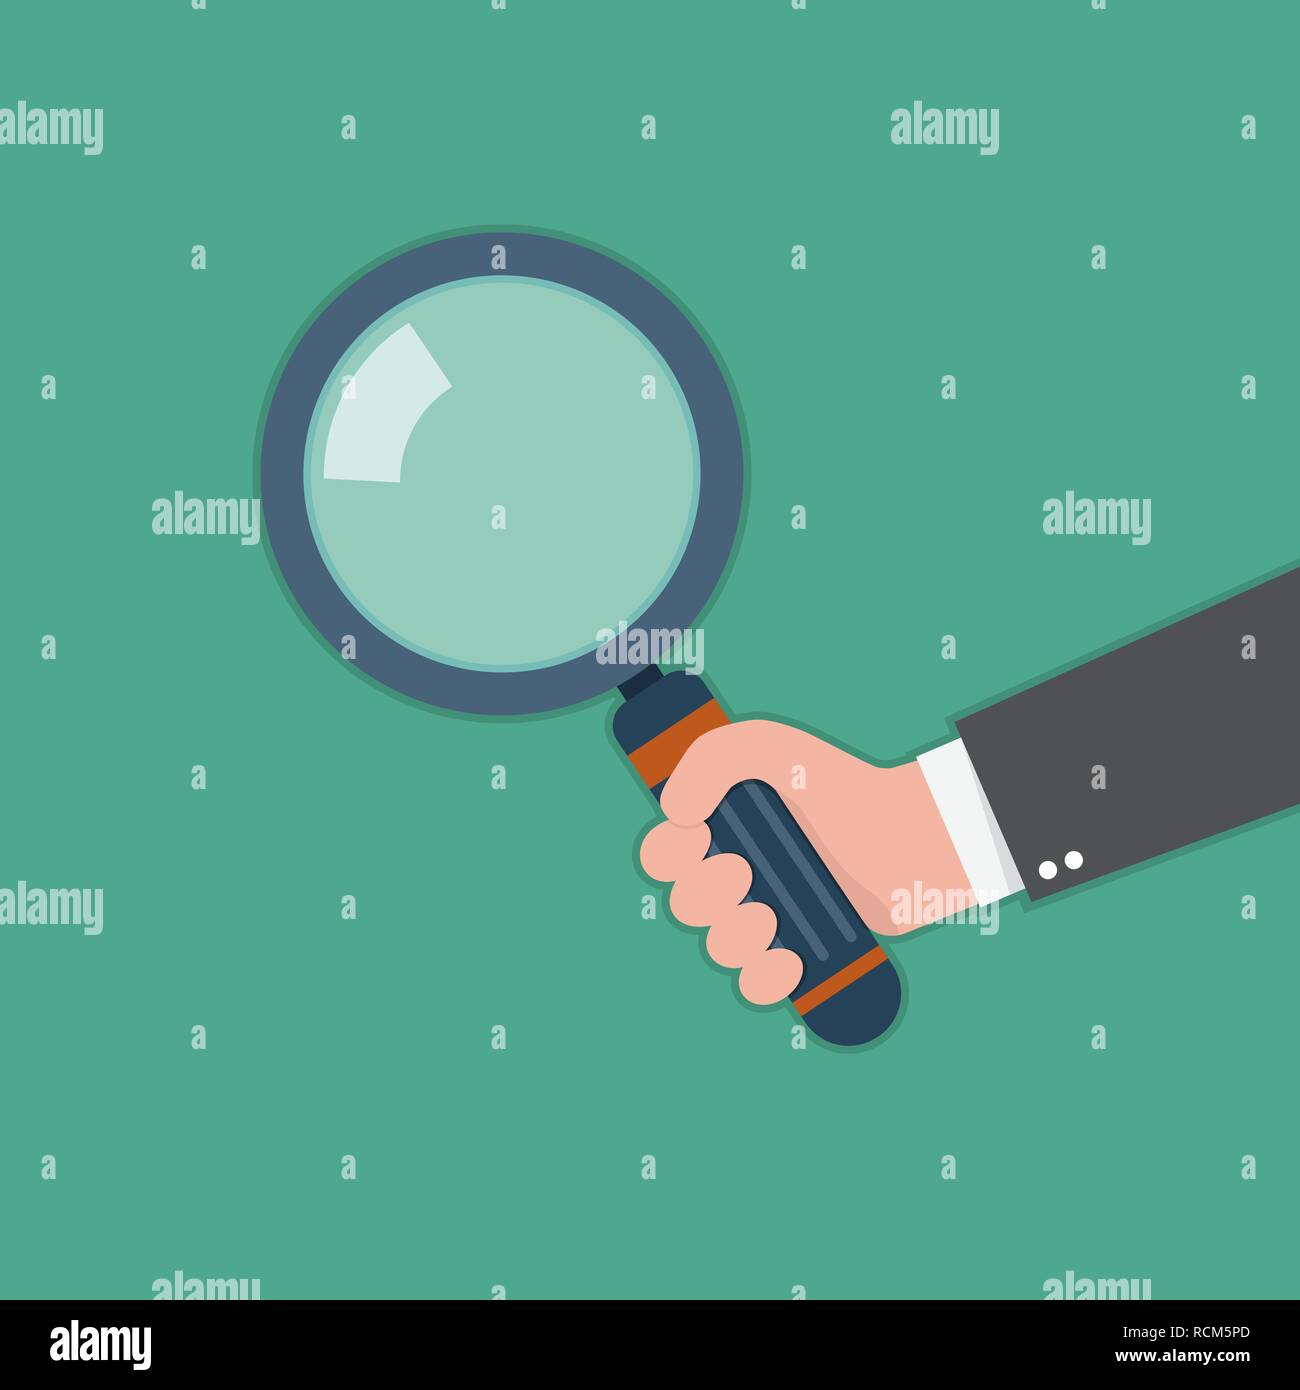 Human hand holding magnifying glass. Vector illustration. Concept of analysis, exploration or zoom - Stock Image